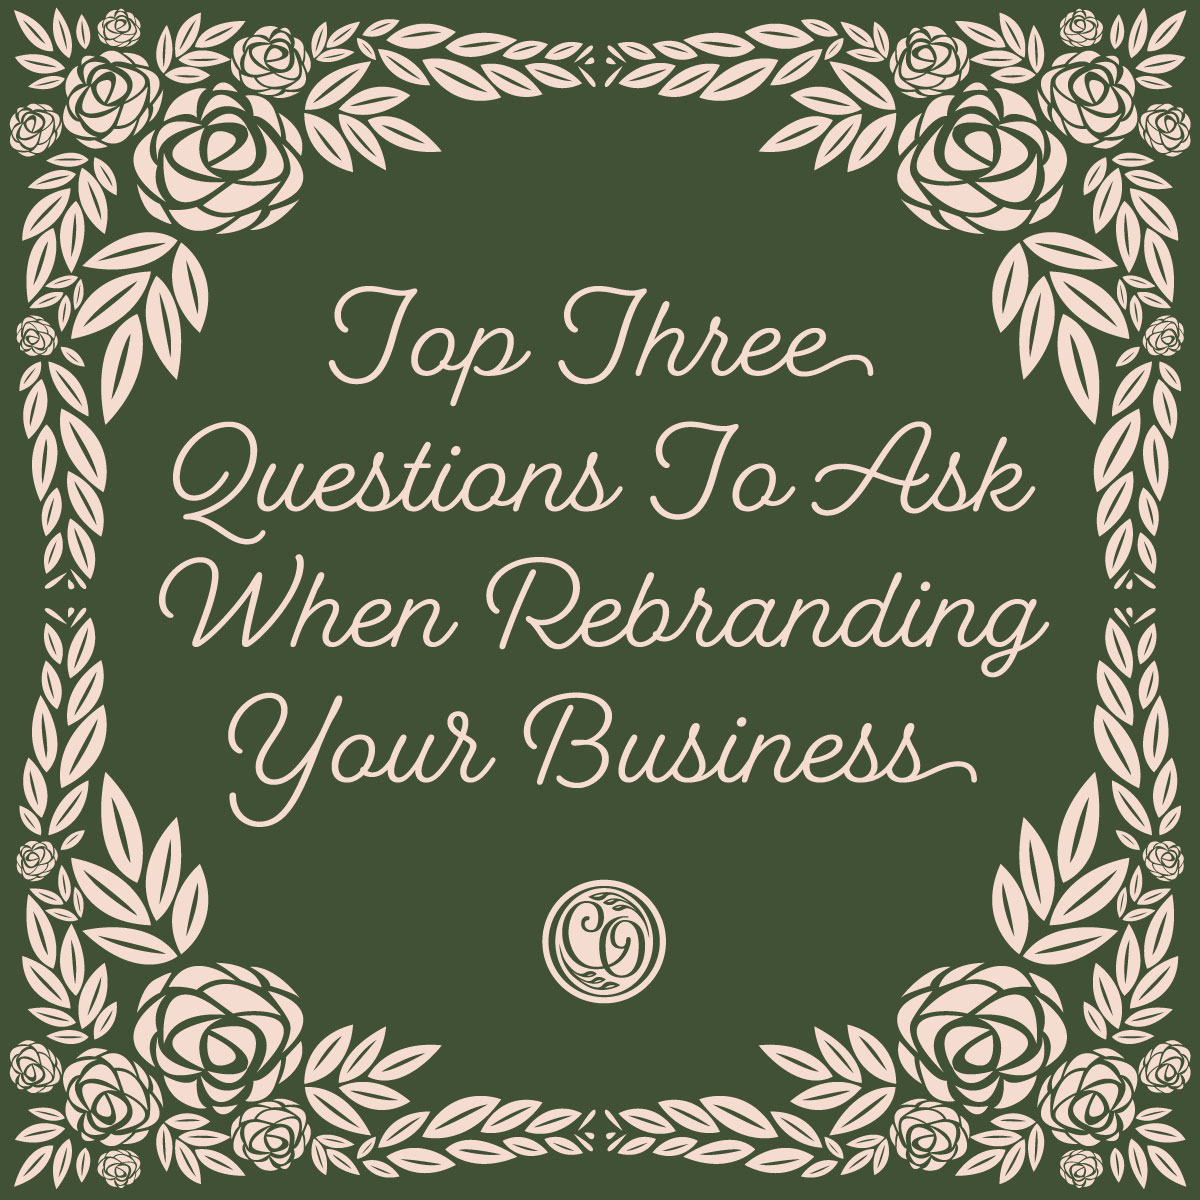 Top Three Questions to ask when rebranding